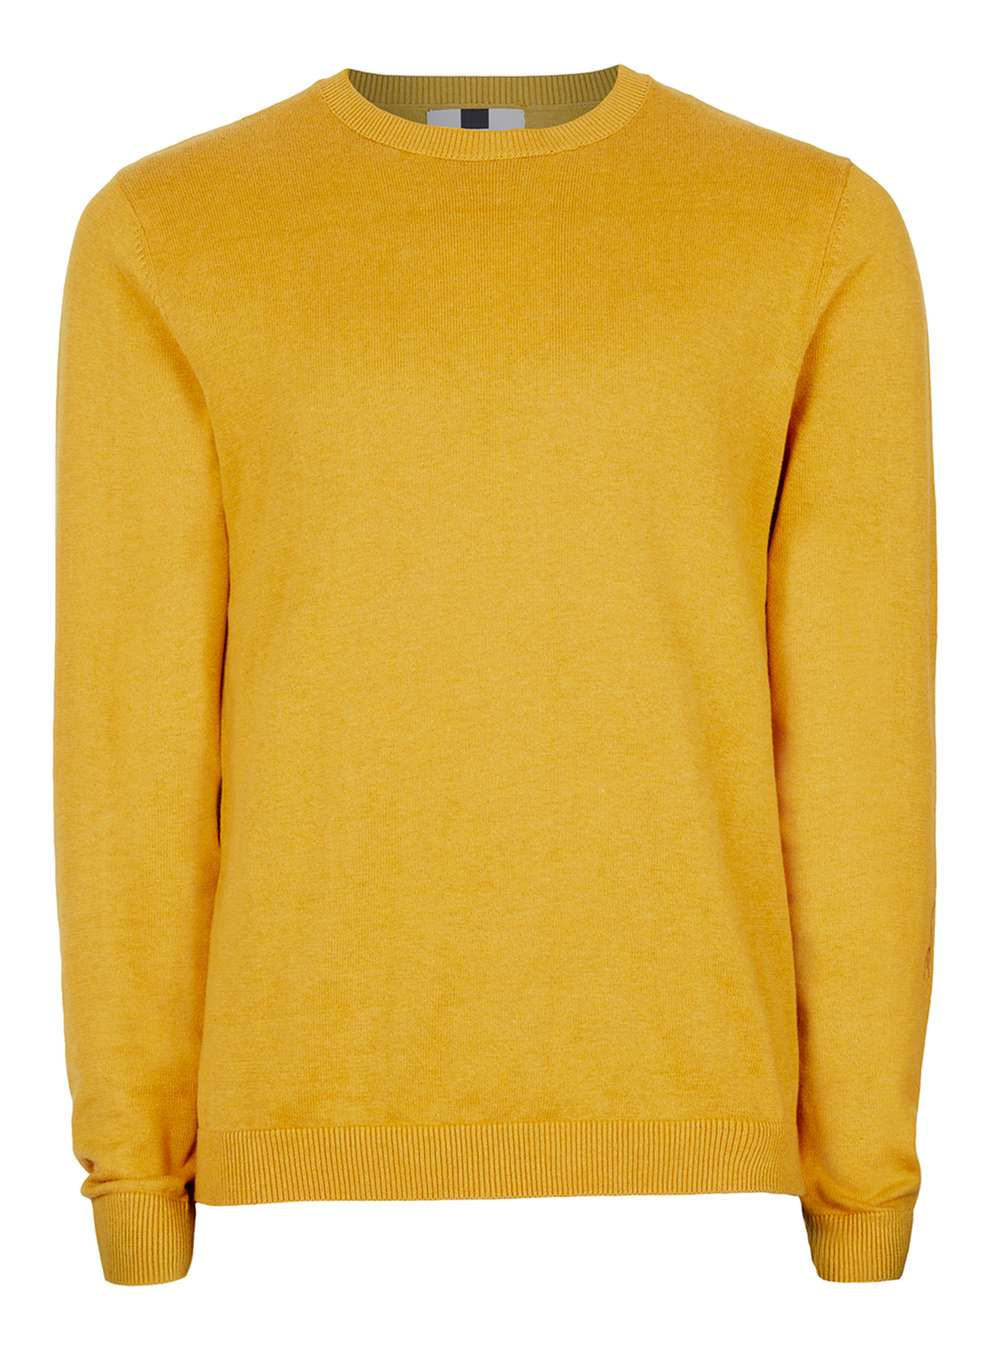 sam-c-perry-denim-on-denim-chunky-knit-top-man-mustard-sweater.jpg